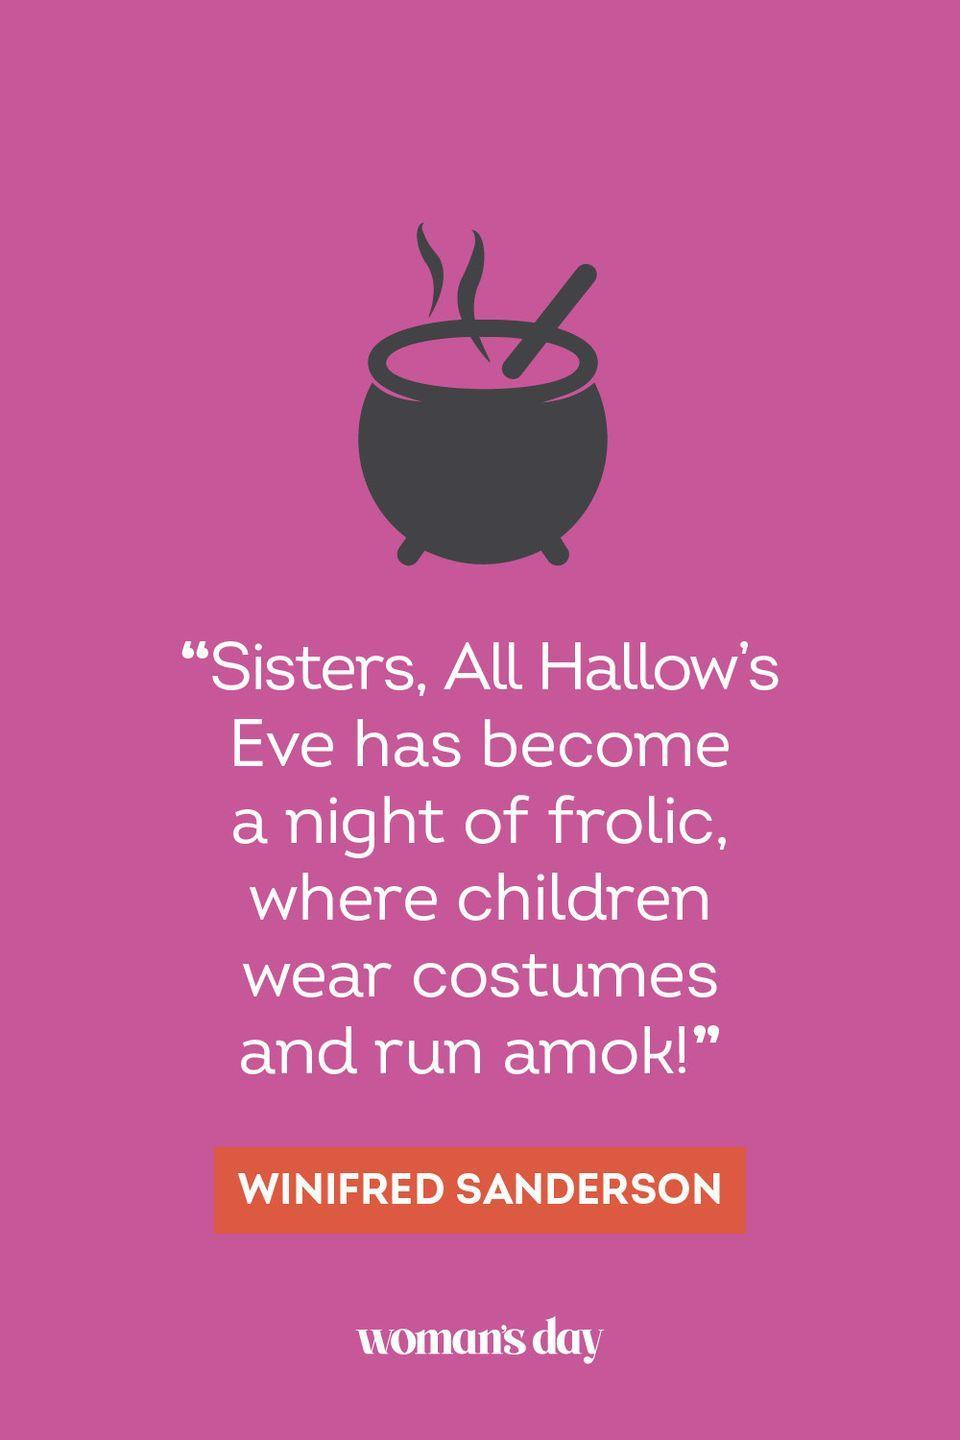 """<p>""""Sisters, All Hallow's Eve has become a night of frolic, where children wear costumes and run amok!"""" — Winifred Sanderson</p>"""